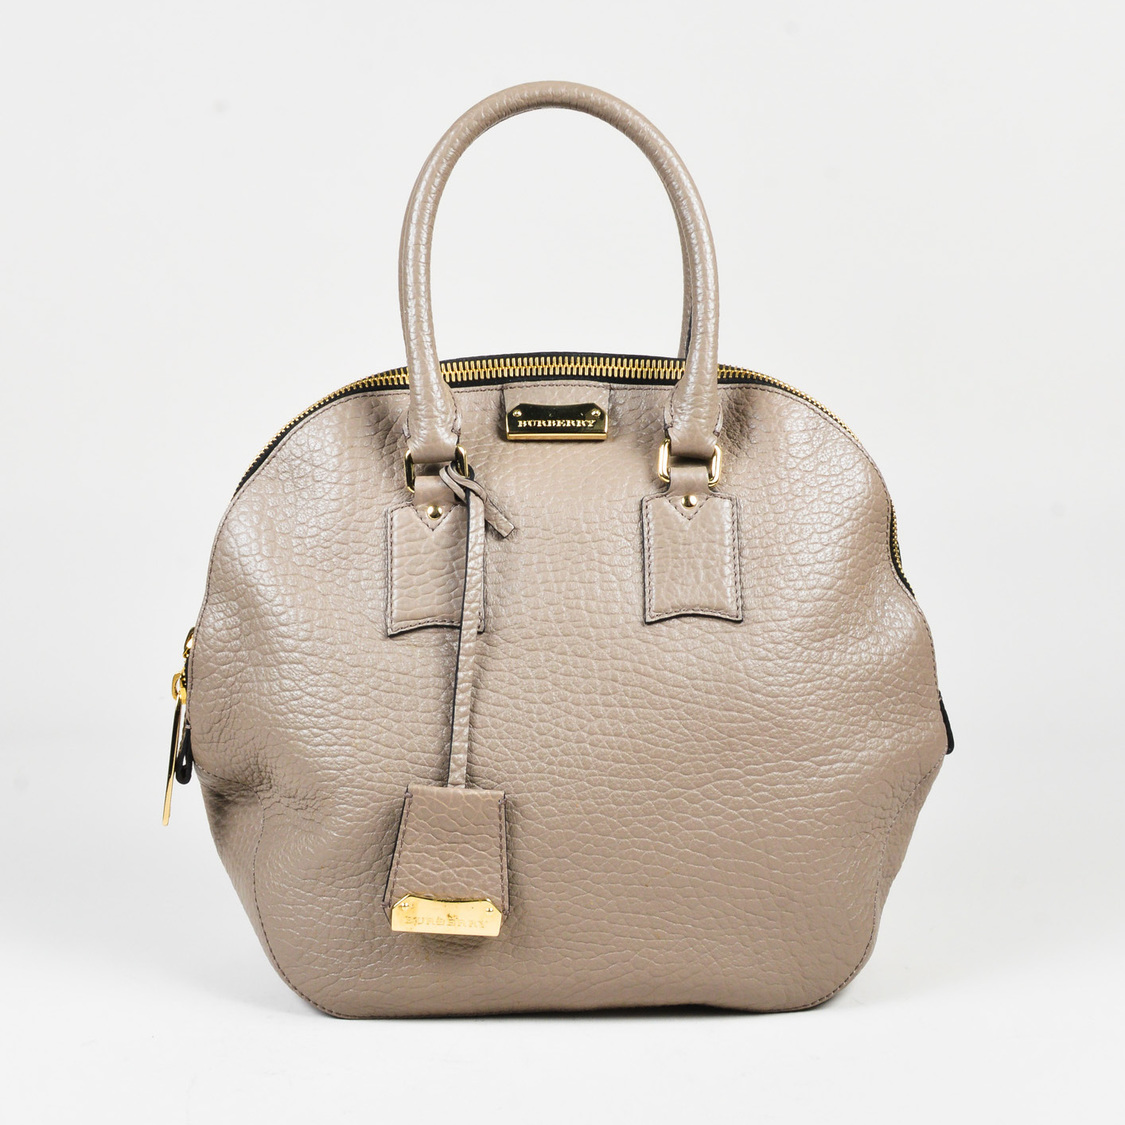 2101ca5273c3 Details about Burberry Taupe Grained Leather Medium